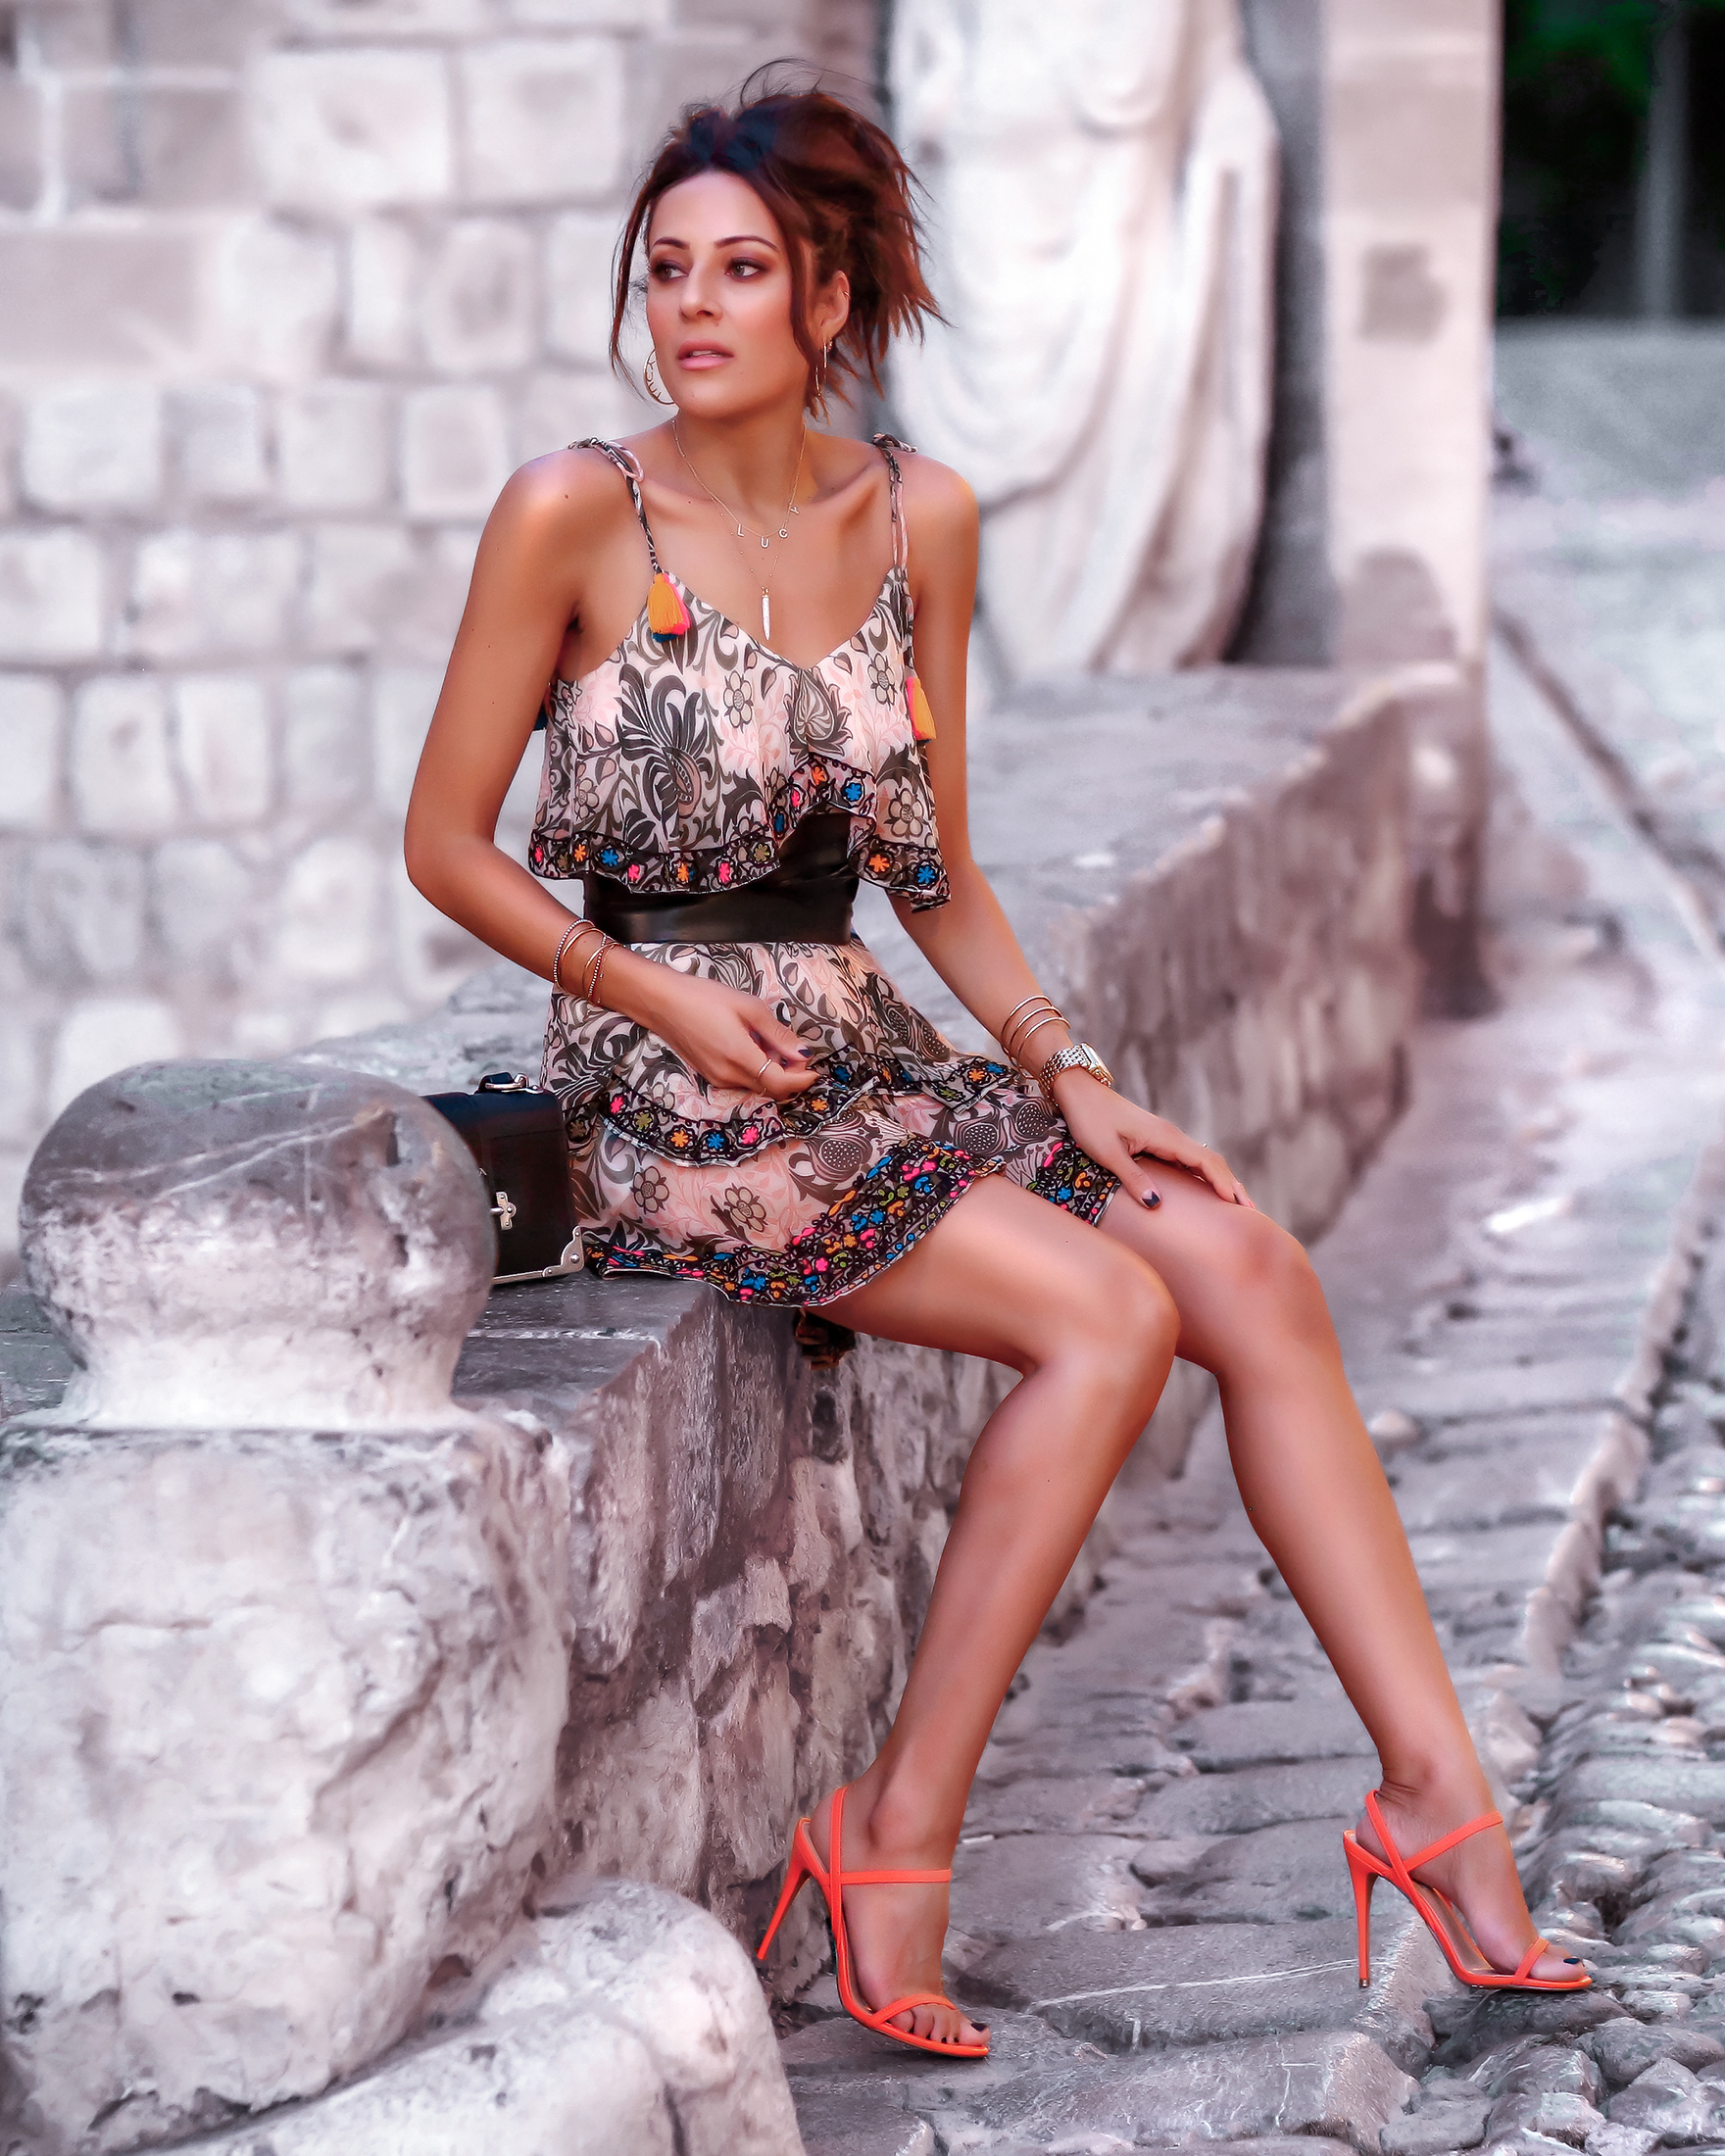 Brunette Woman in Ibiza in Summer Dress and Steve Madden Neon Sandals